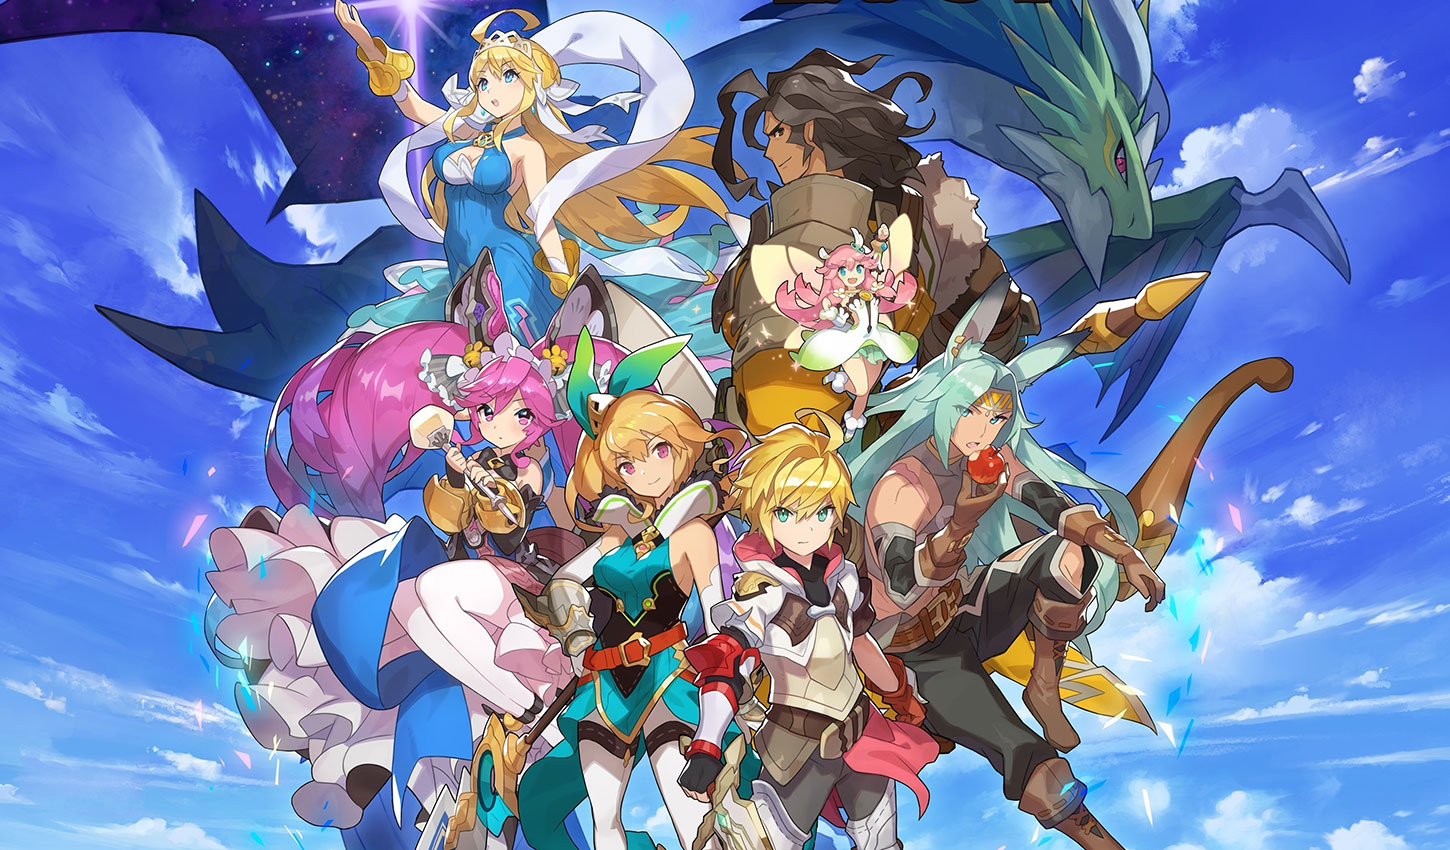 Nintendo S Dragalia Lost Reaches $75 Million Surpassing